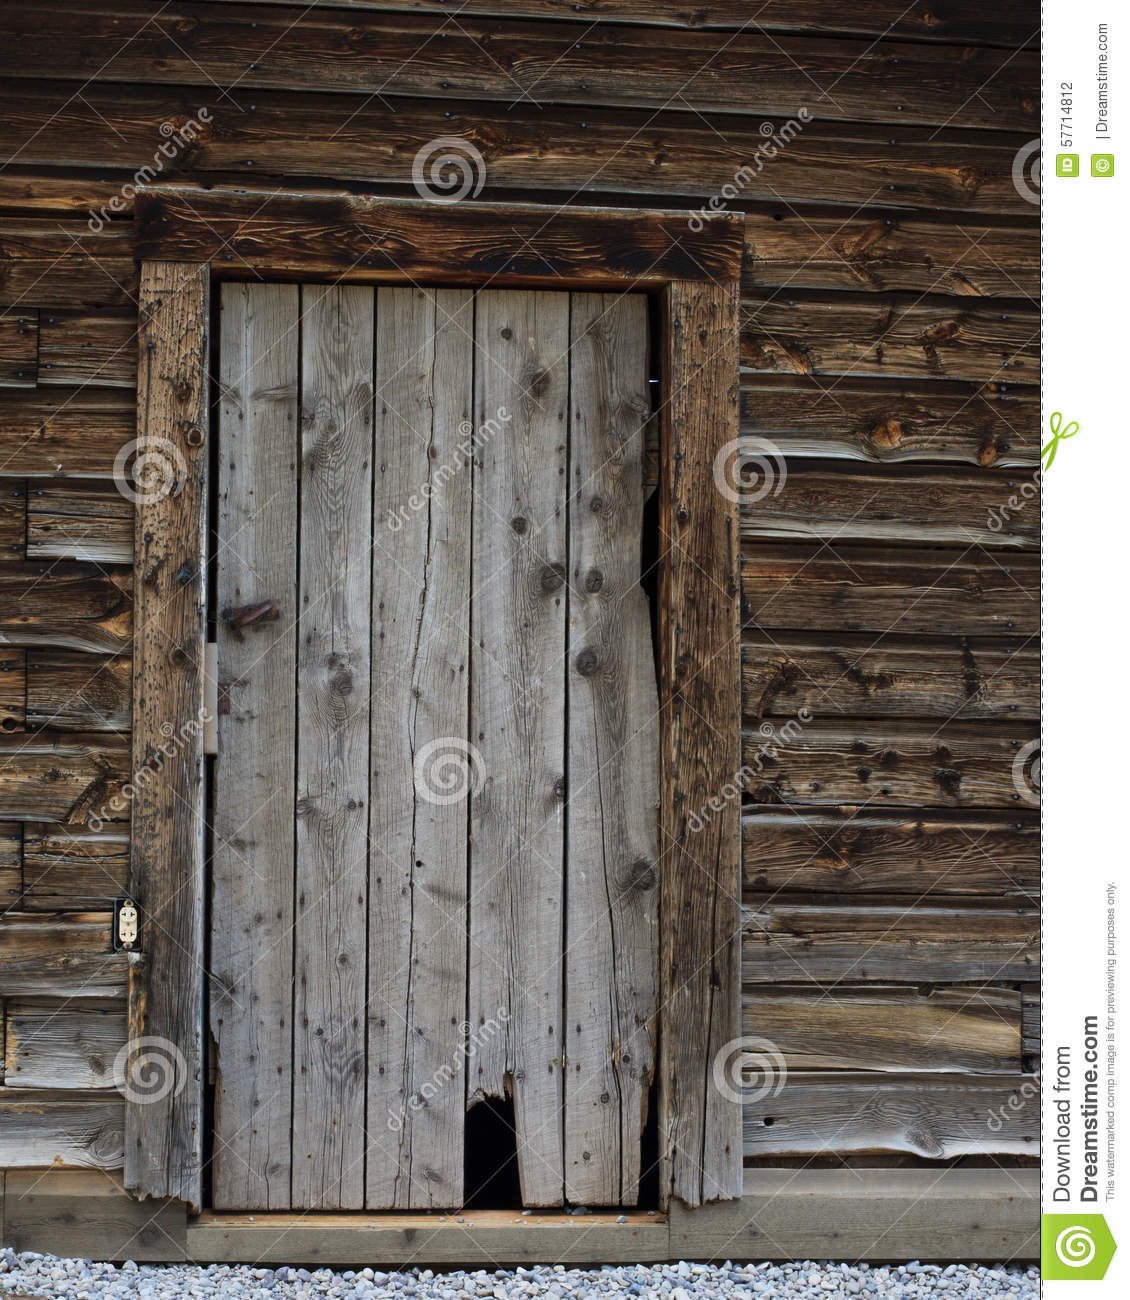 Old Log Cabin Door & Old Log Cabin Door stock photo. Image of natural home - 57714812